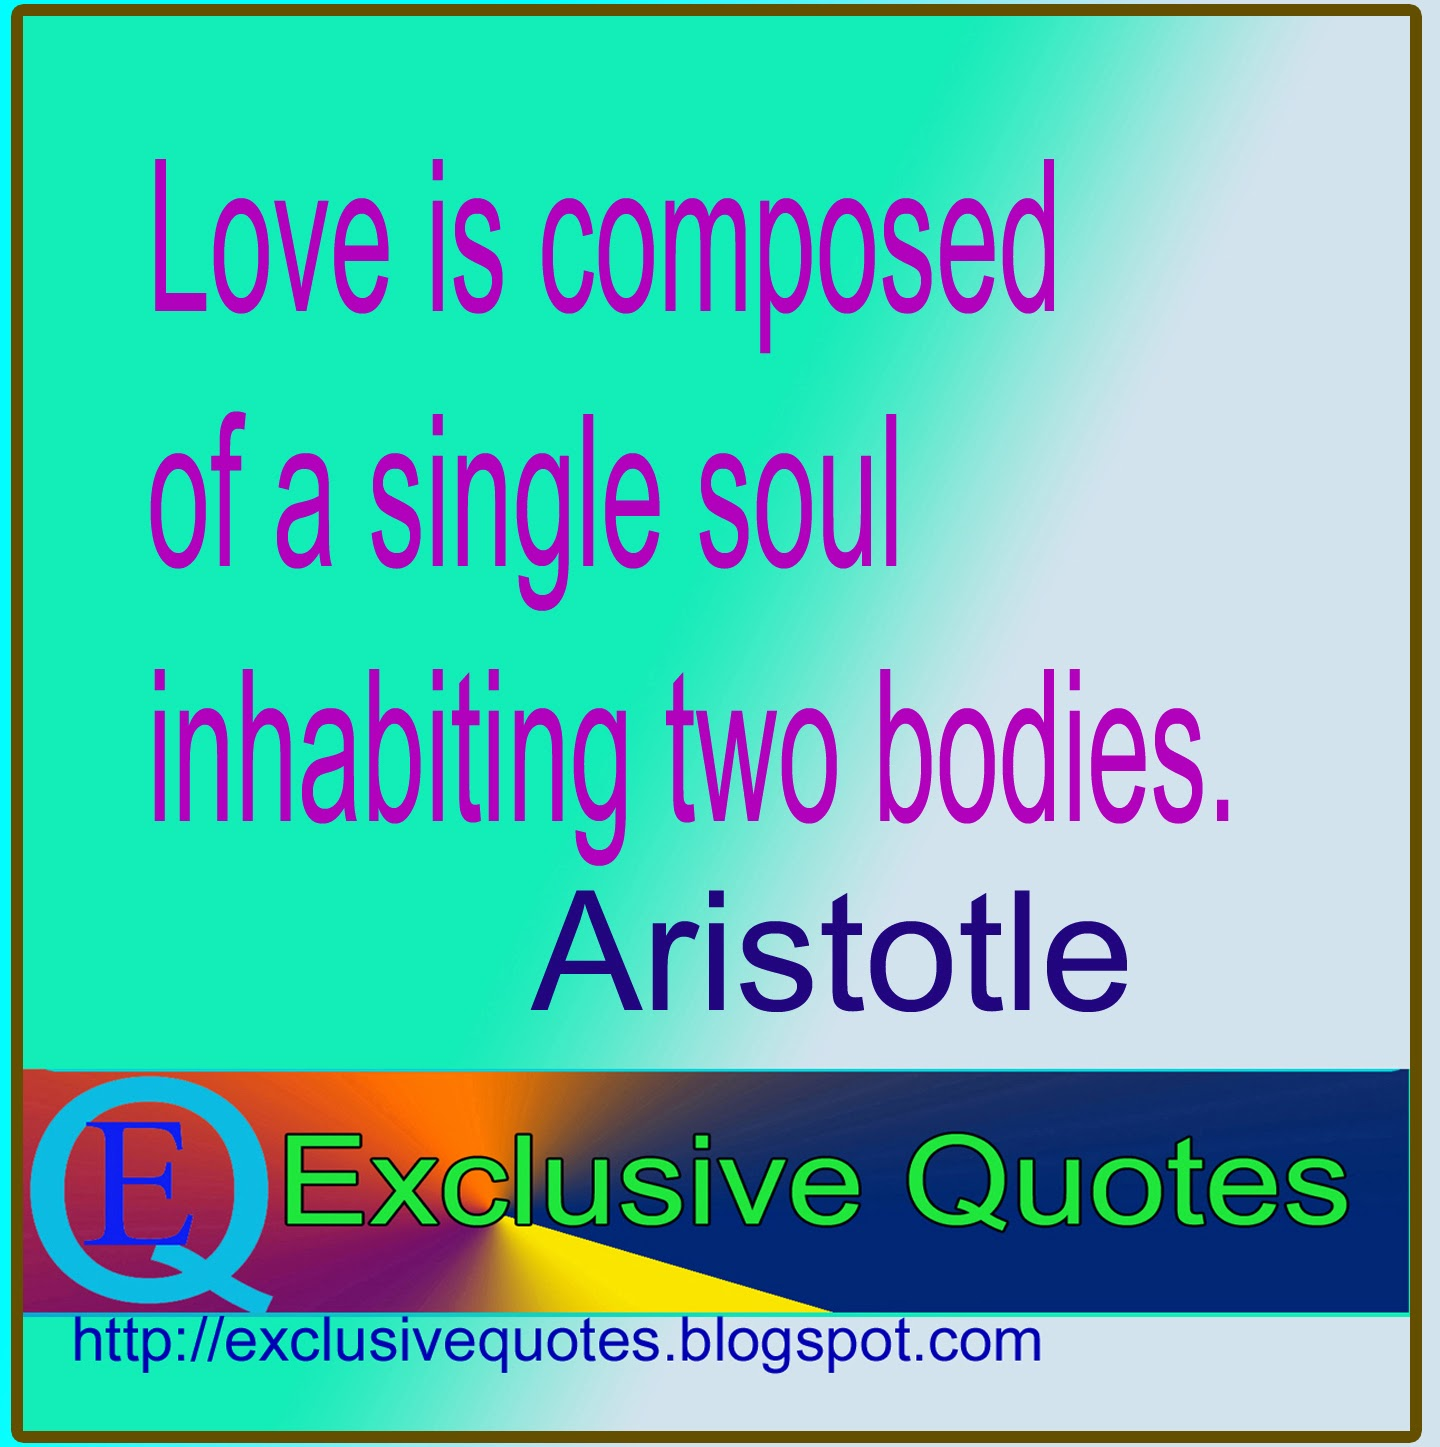 Aristotle Quotes On Happiness: Aristotle Love Quotes. QuotesGram